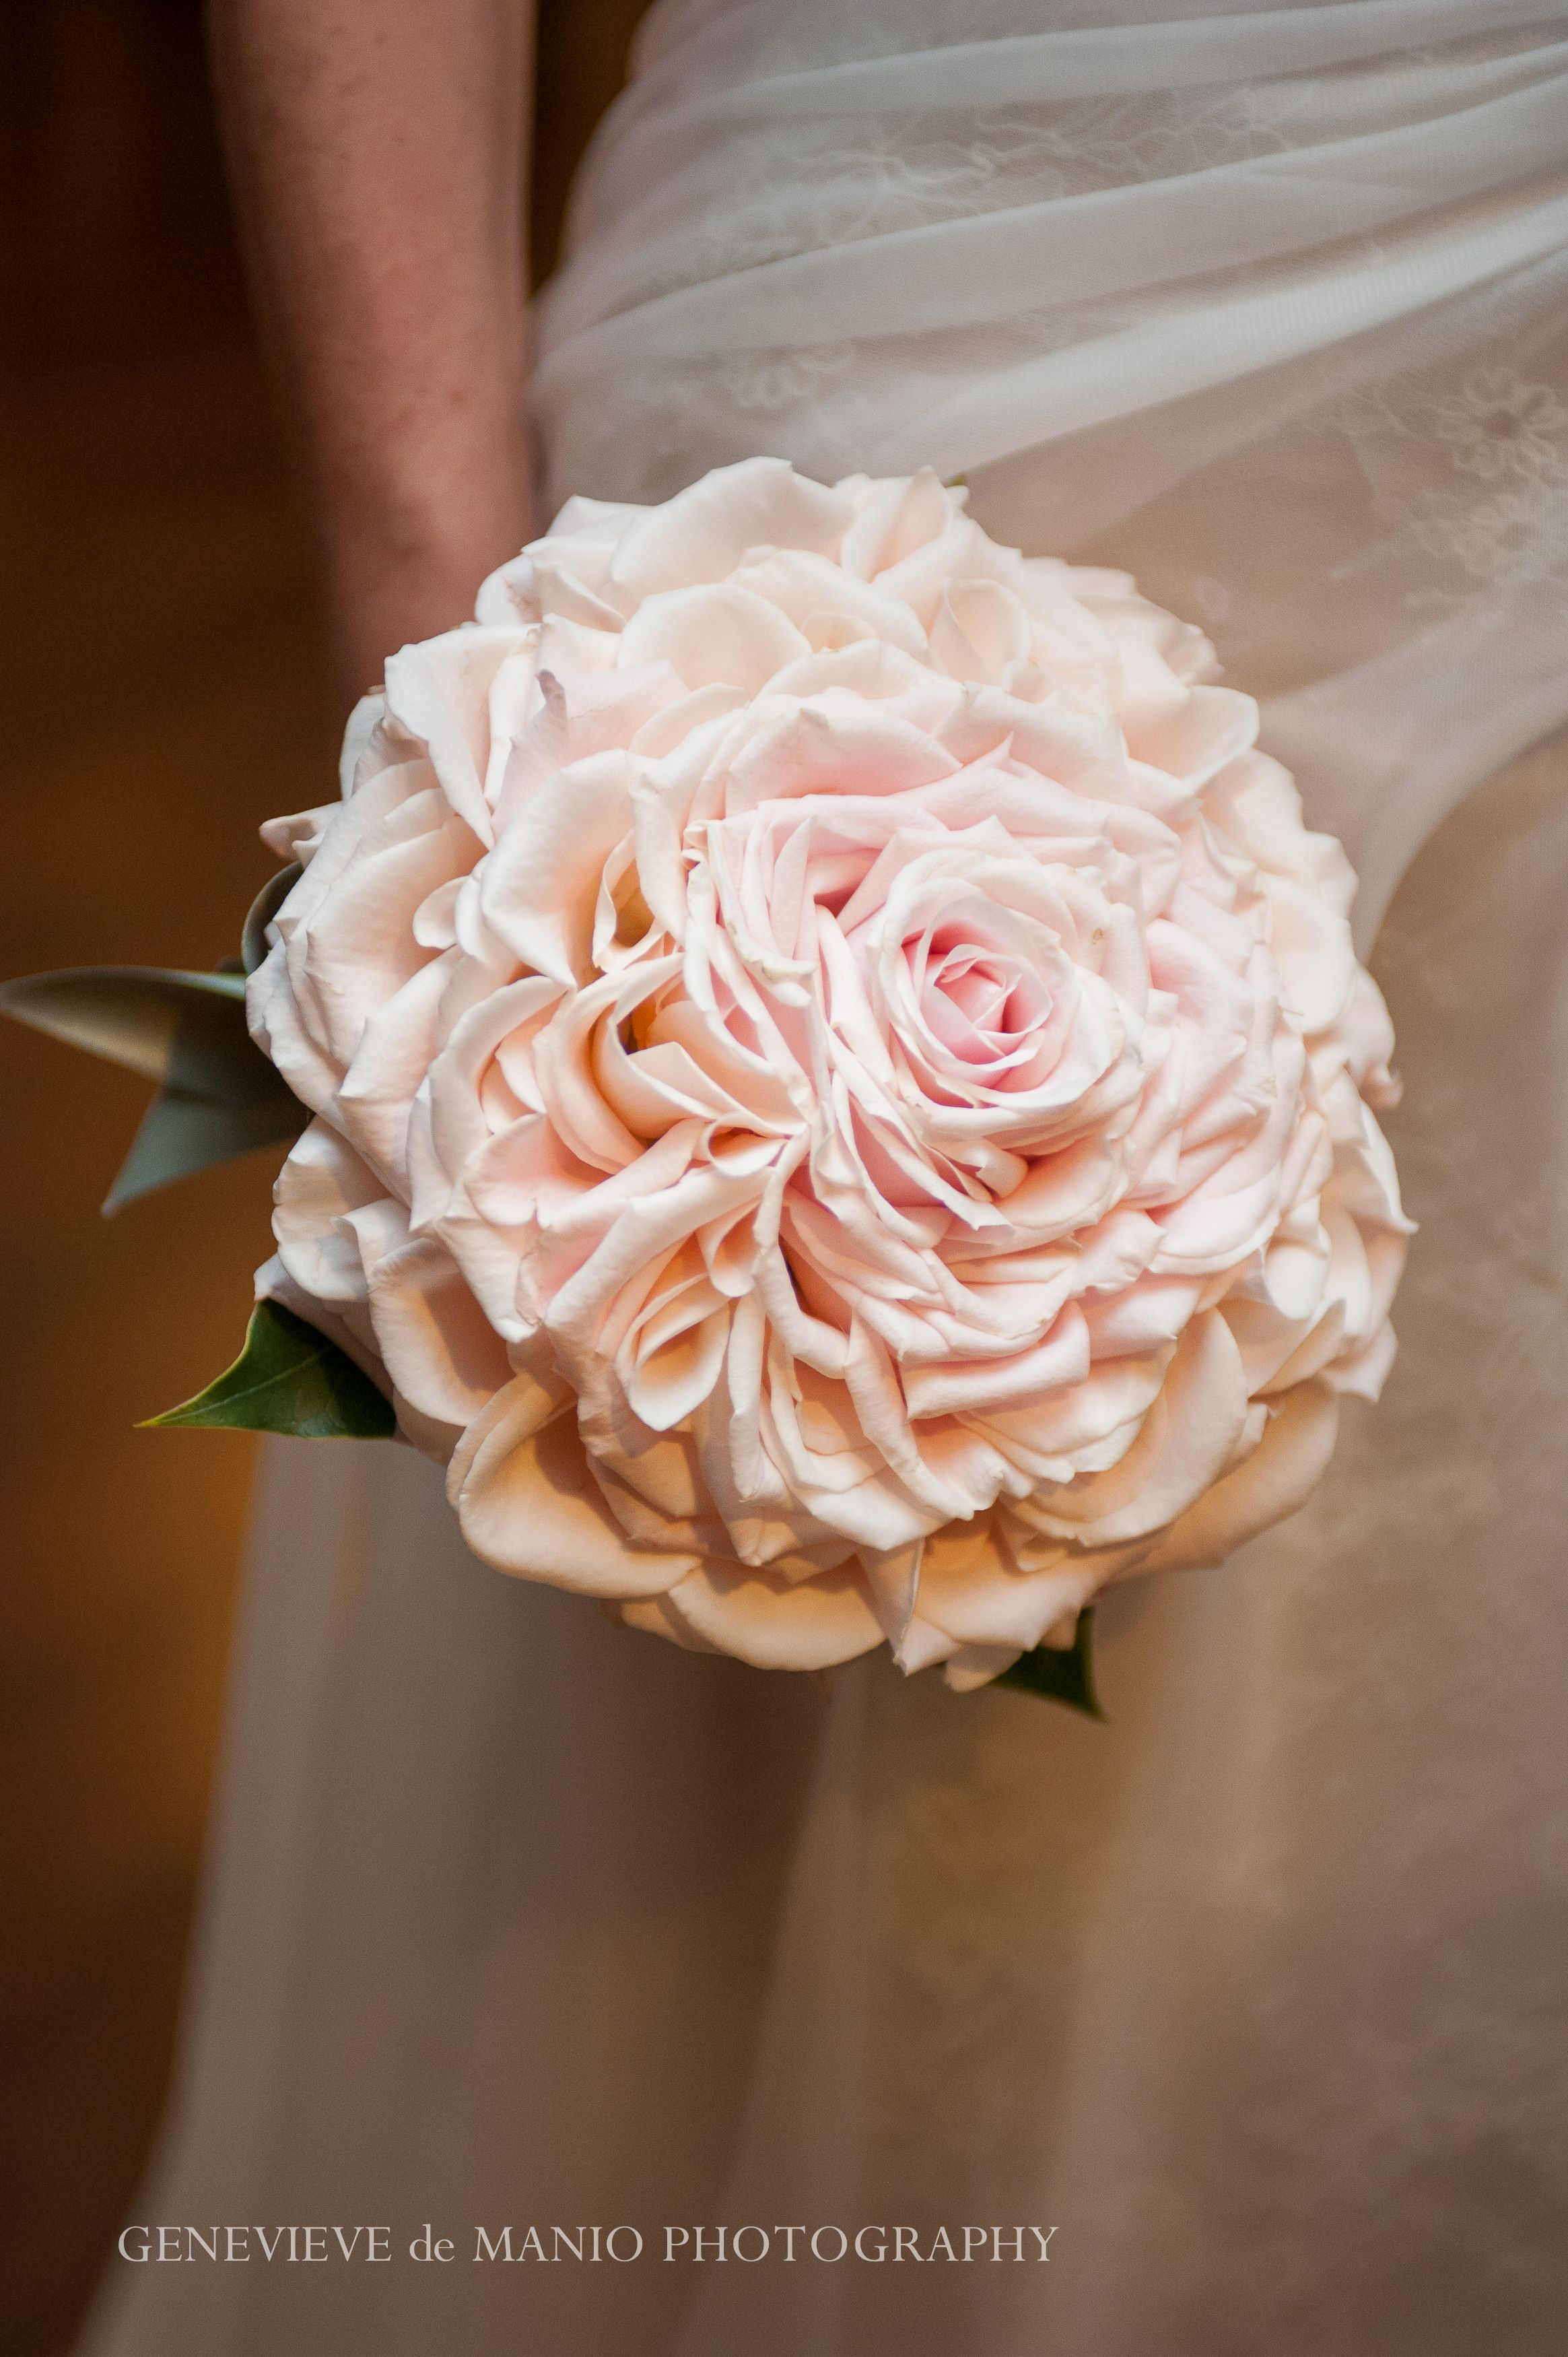 Bouquet Sposa New York.A Magical Soft Blush Bouquet With Fanciful Layers Of Velvety Rose